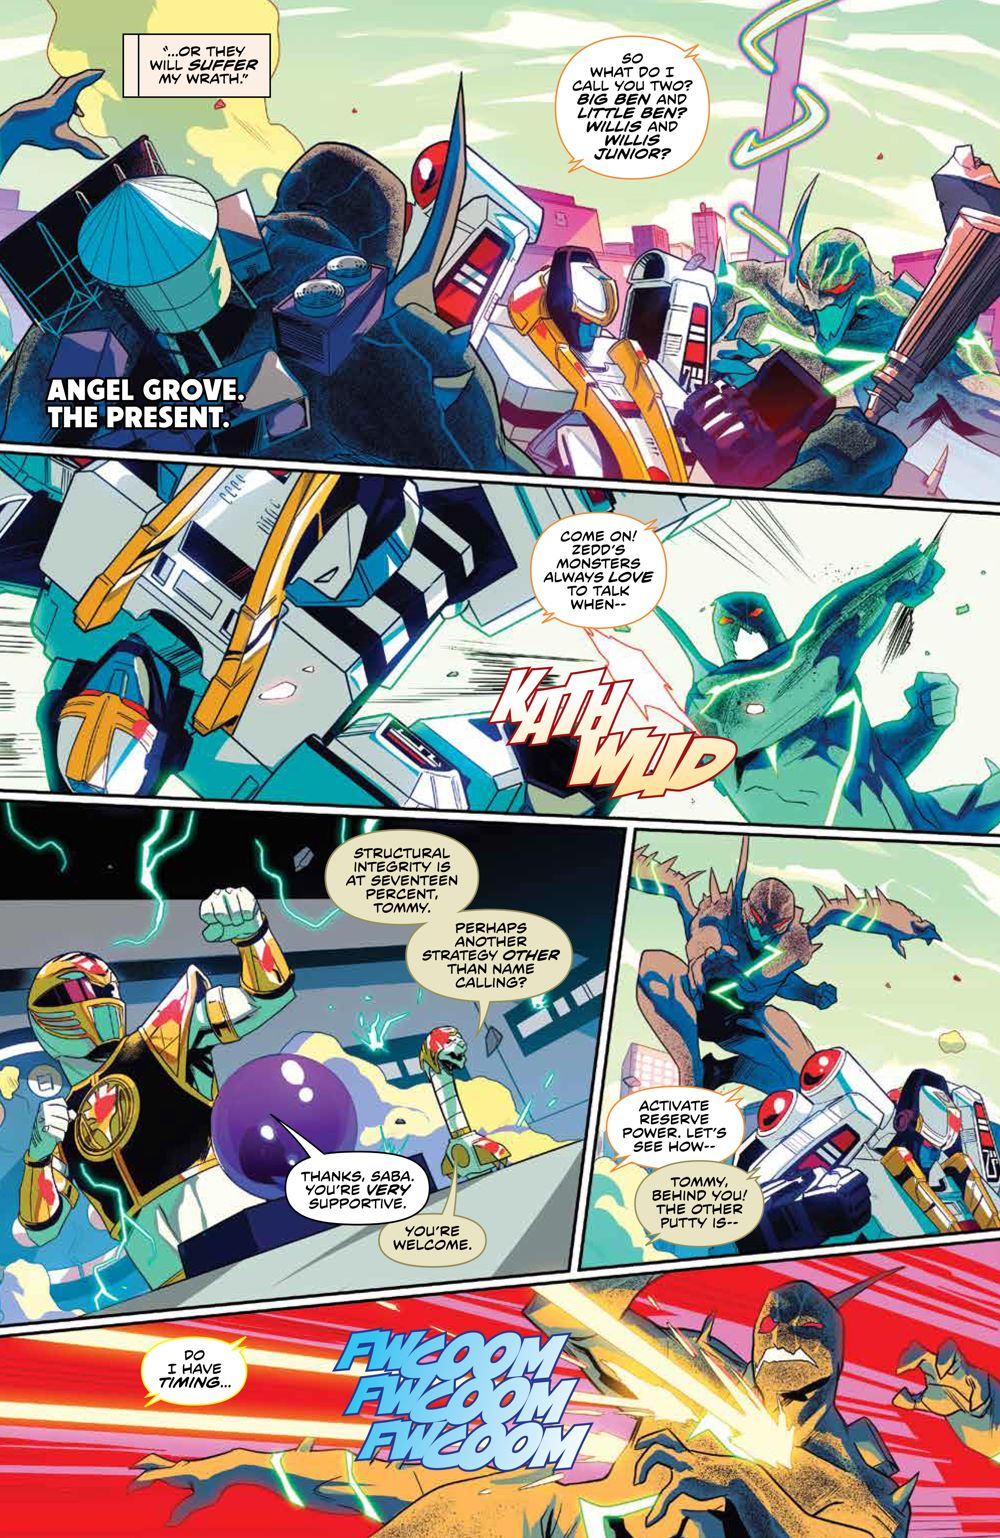 Mighty_Morphin_008_PRESS_7-1 ComicList Previews: MIGHTY MORPHIN #8